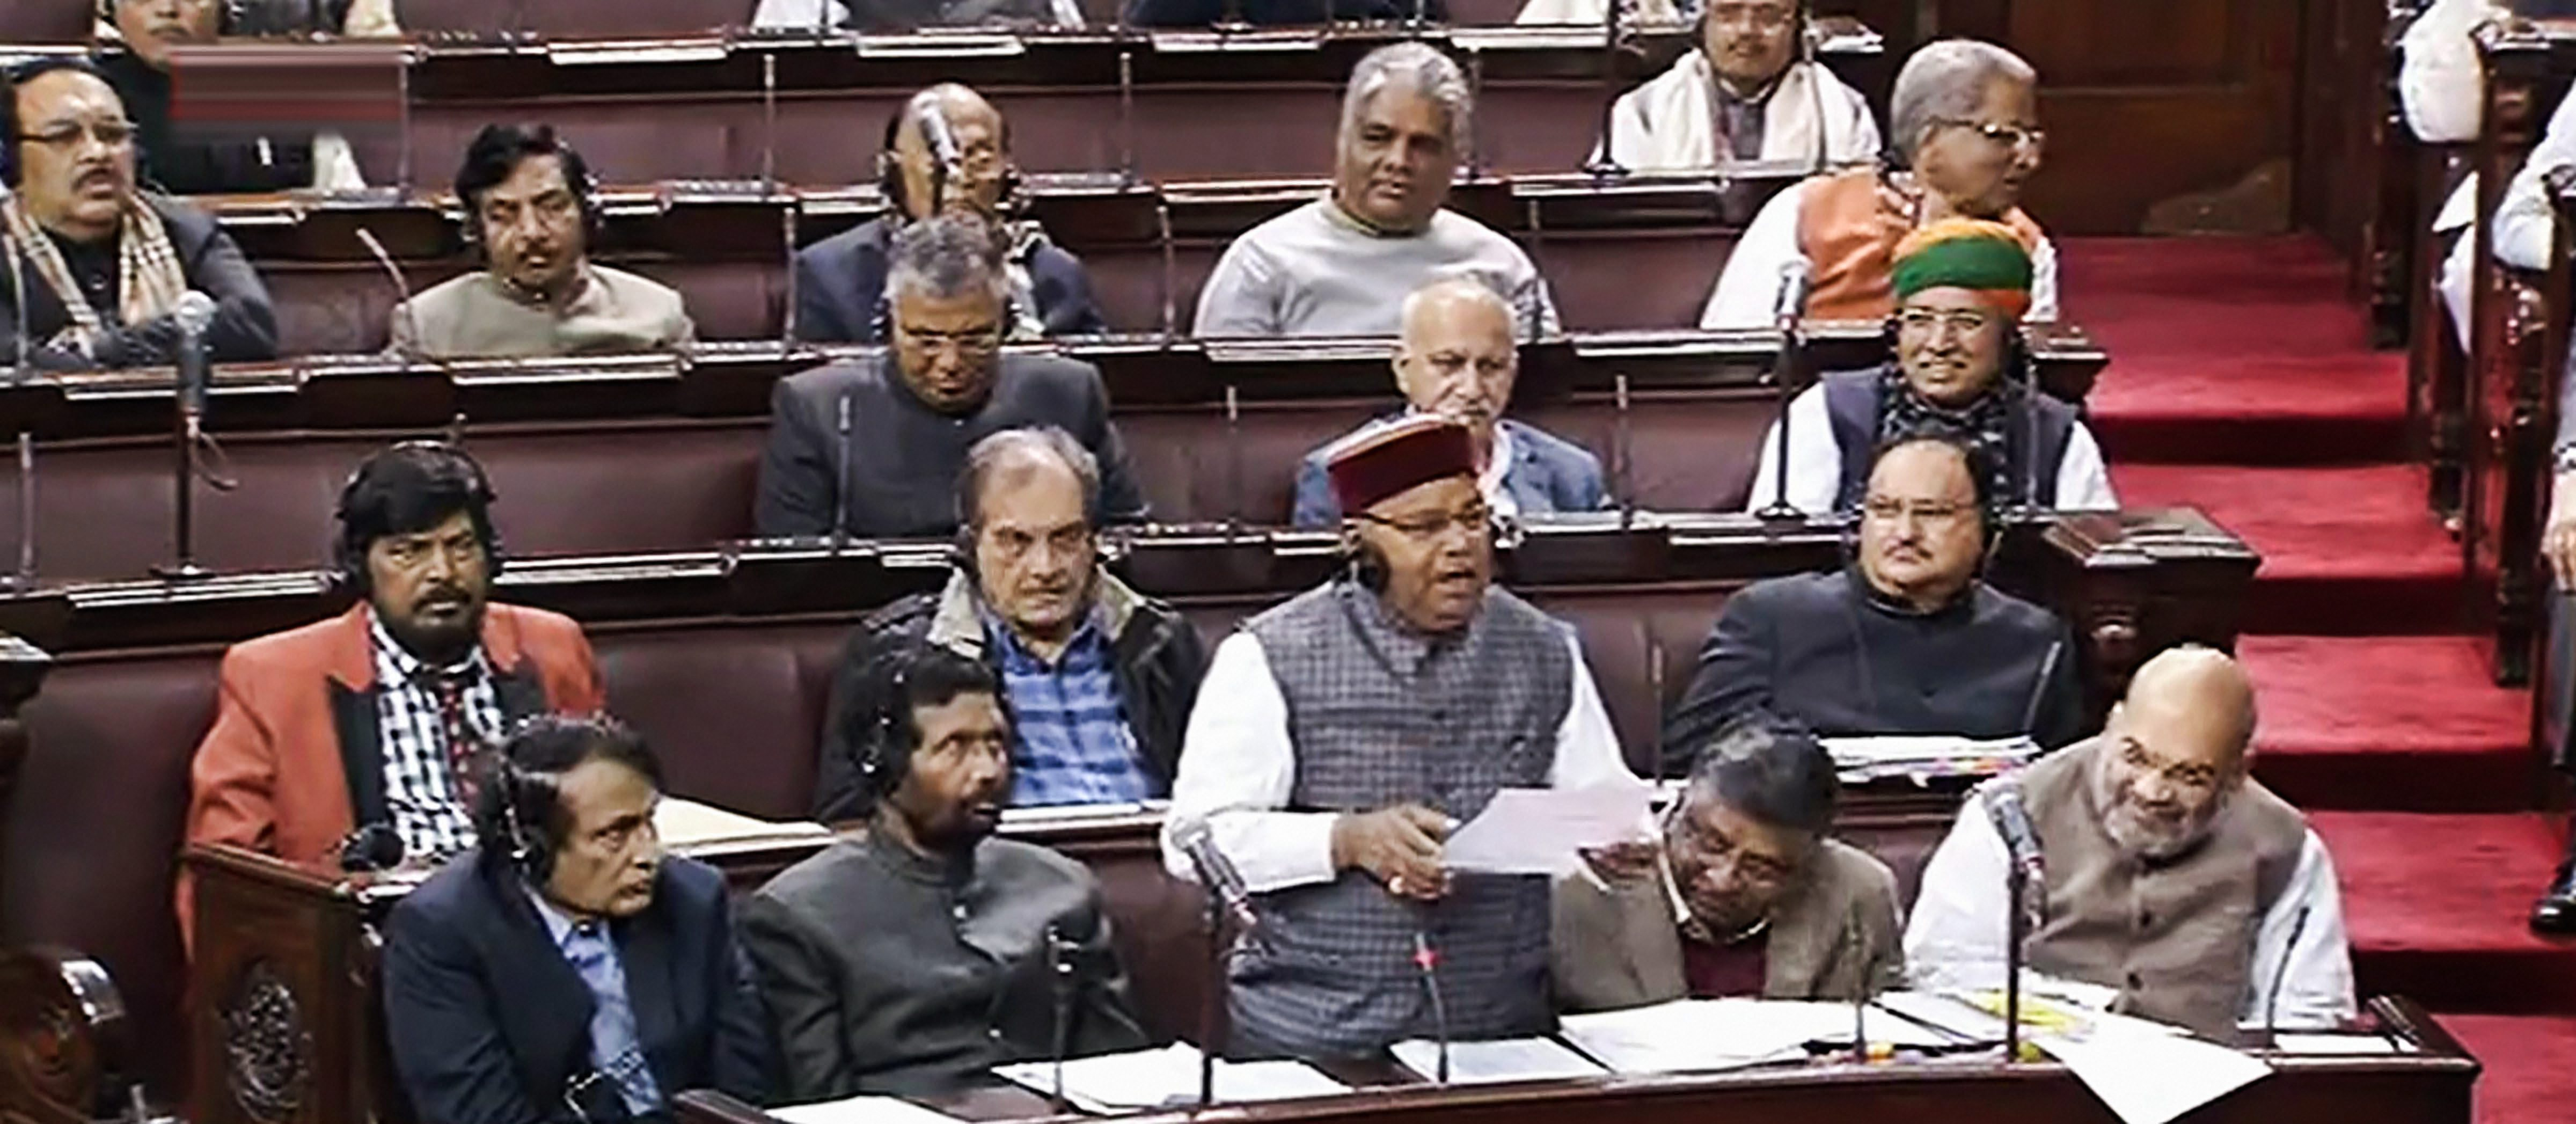 Social justice minister Thawar Chand Gehlot speaks in the Rajya Sabha on Wednesday, January 09, 2019